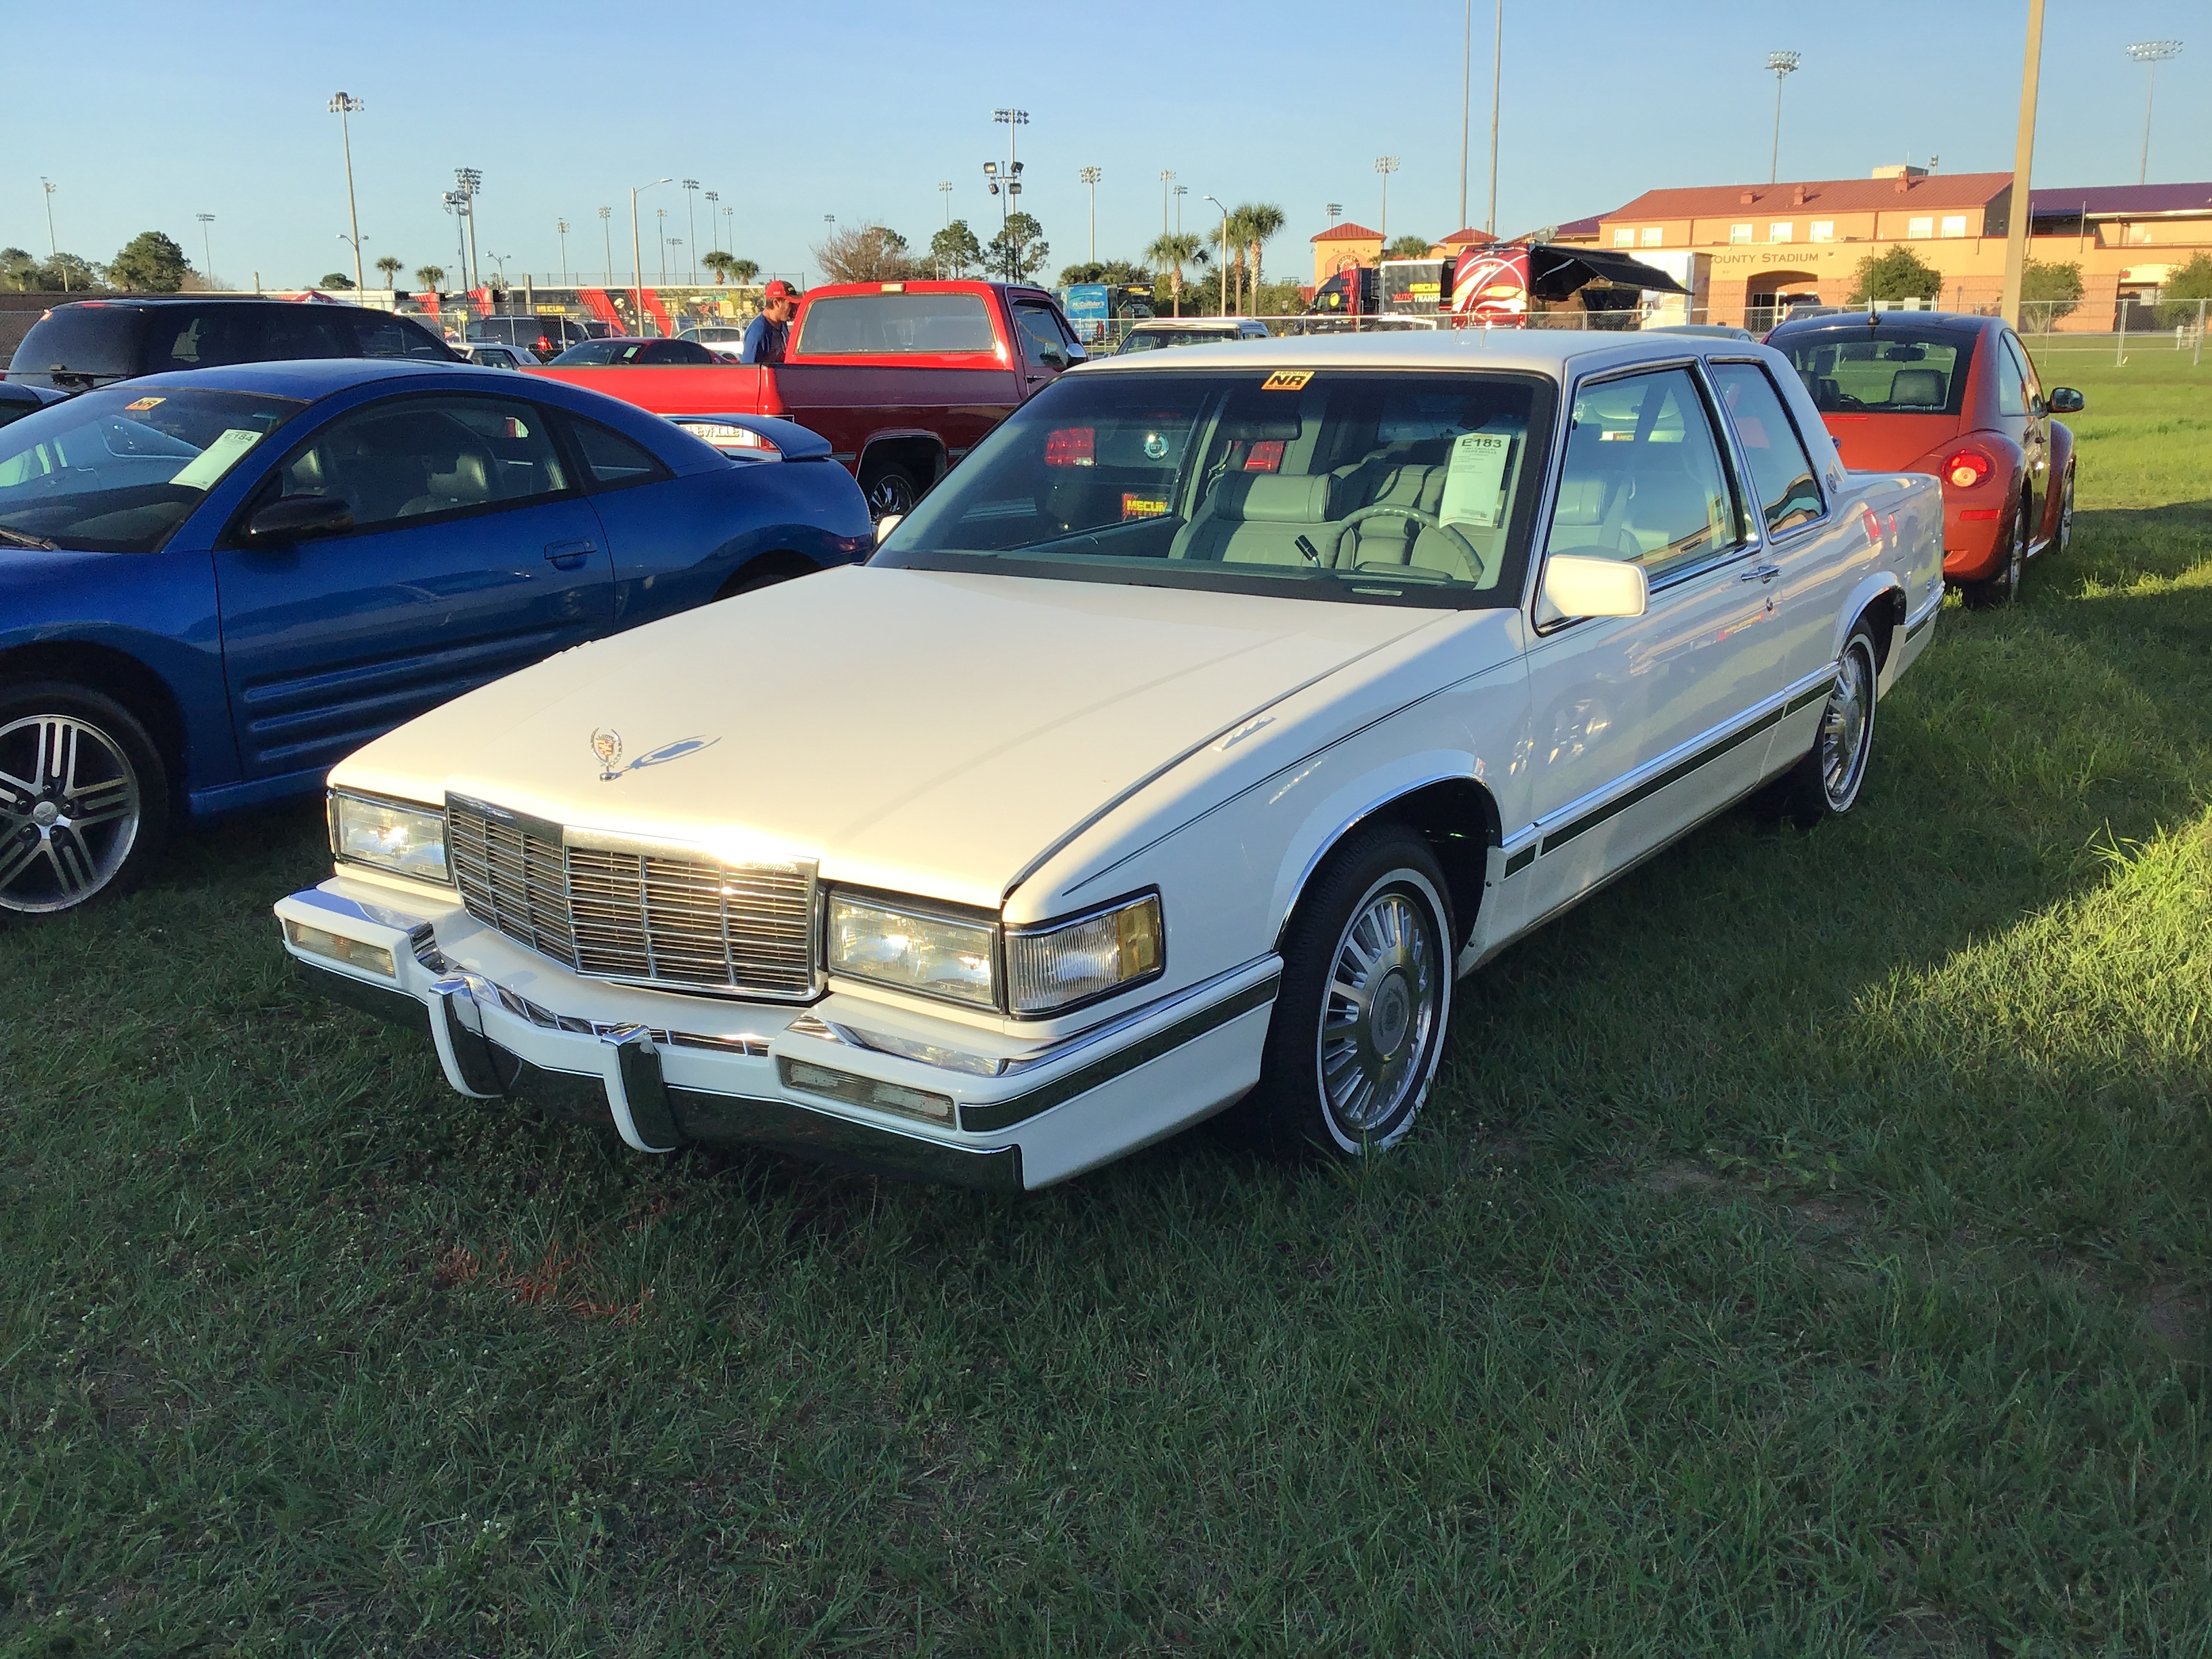 1991 cadillac deville values hagerty valuation tool 1991 cadillac deville values hagerty